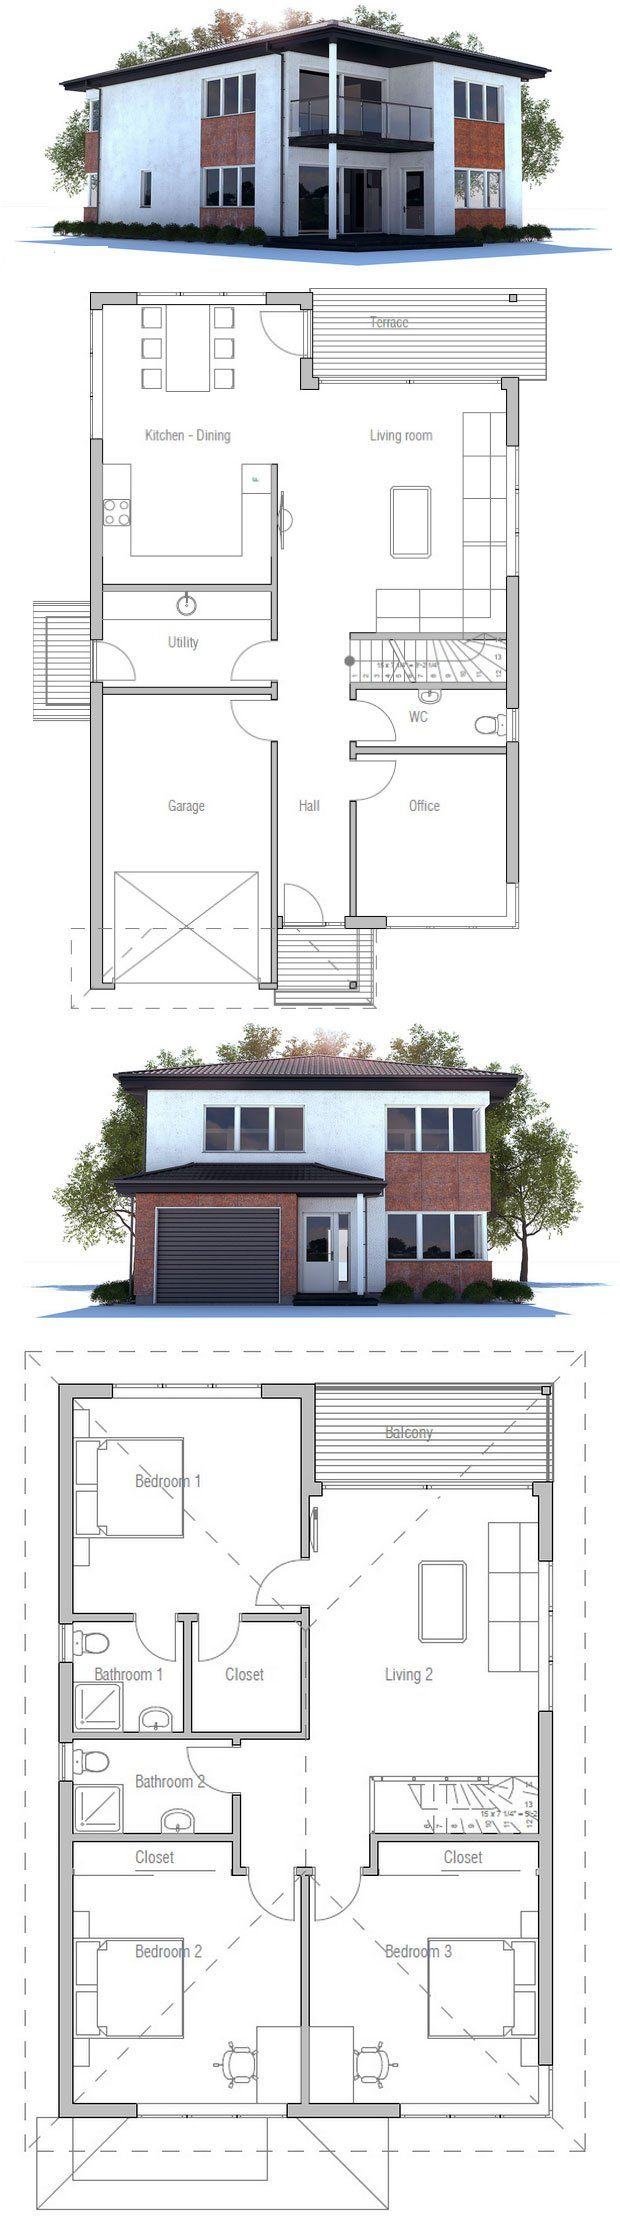 Narrow lot modern house plan floor plan from concepthome for Modern house design small lot